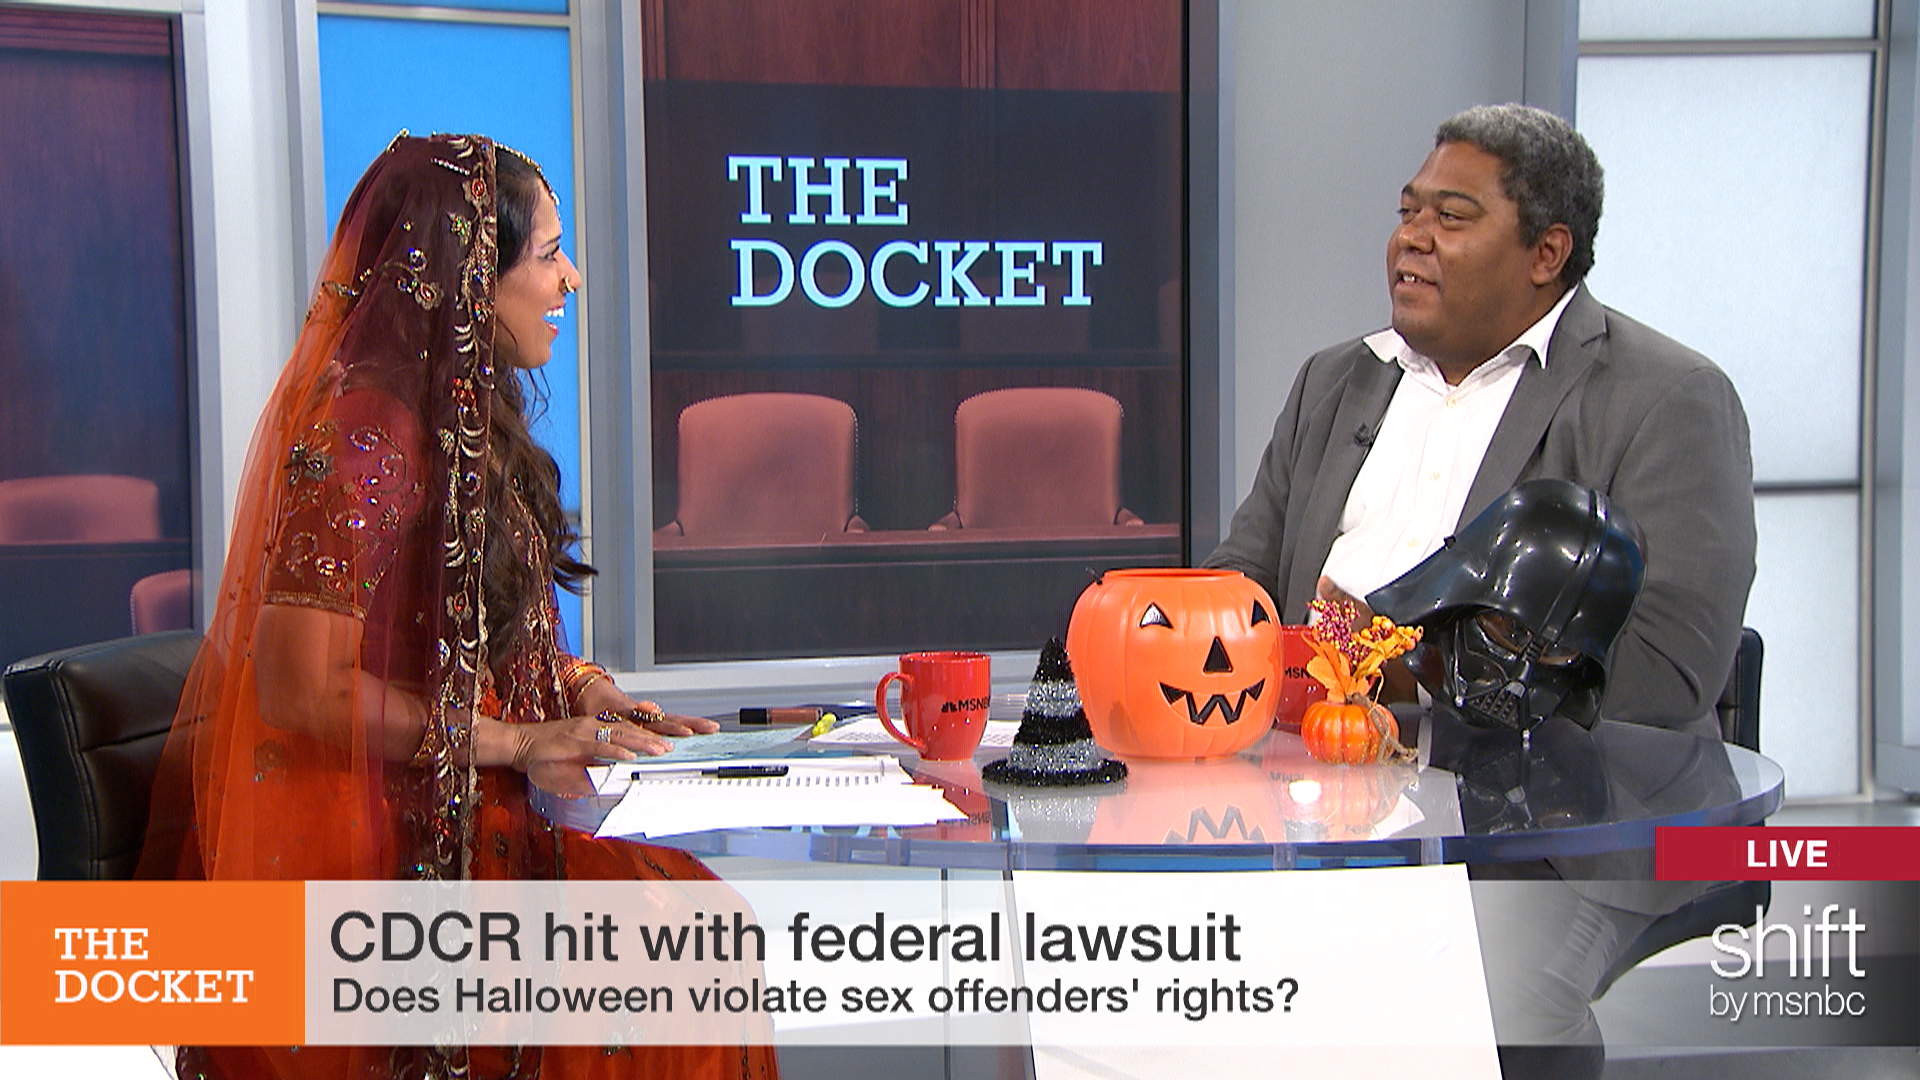 Does Halloween violate sex offenders' rights?